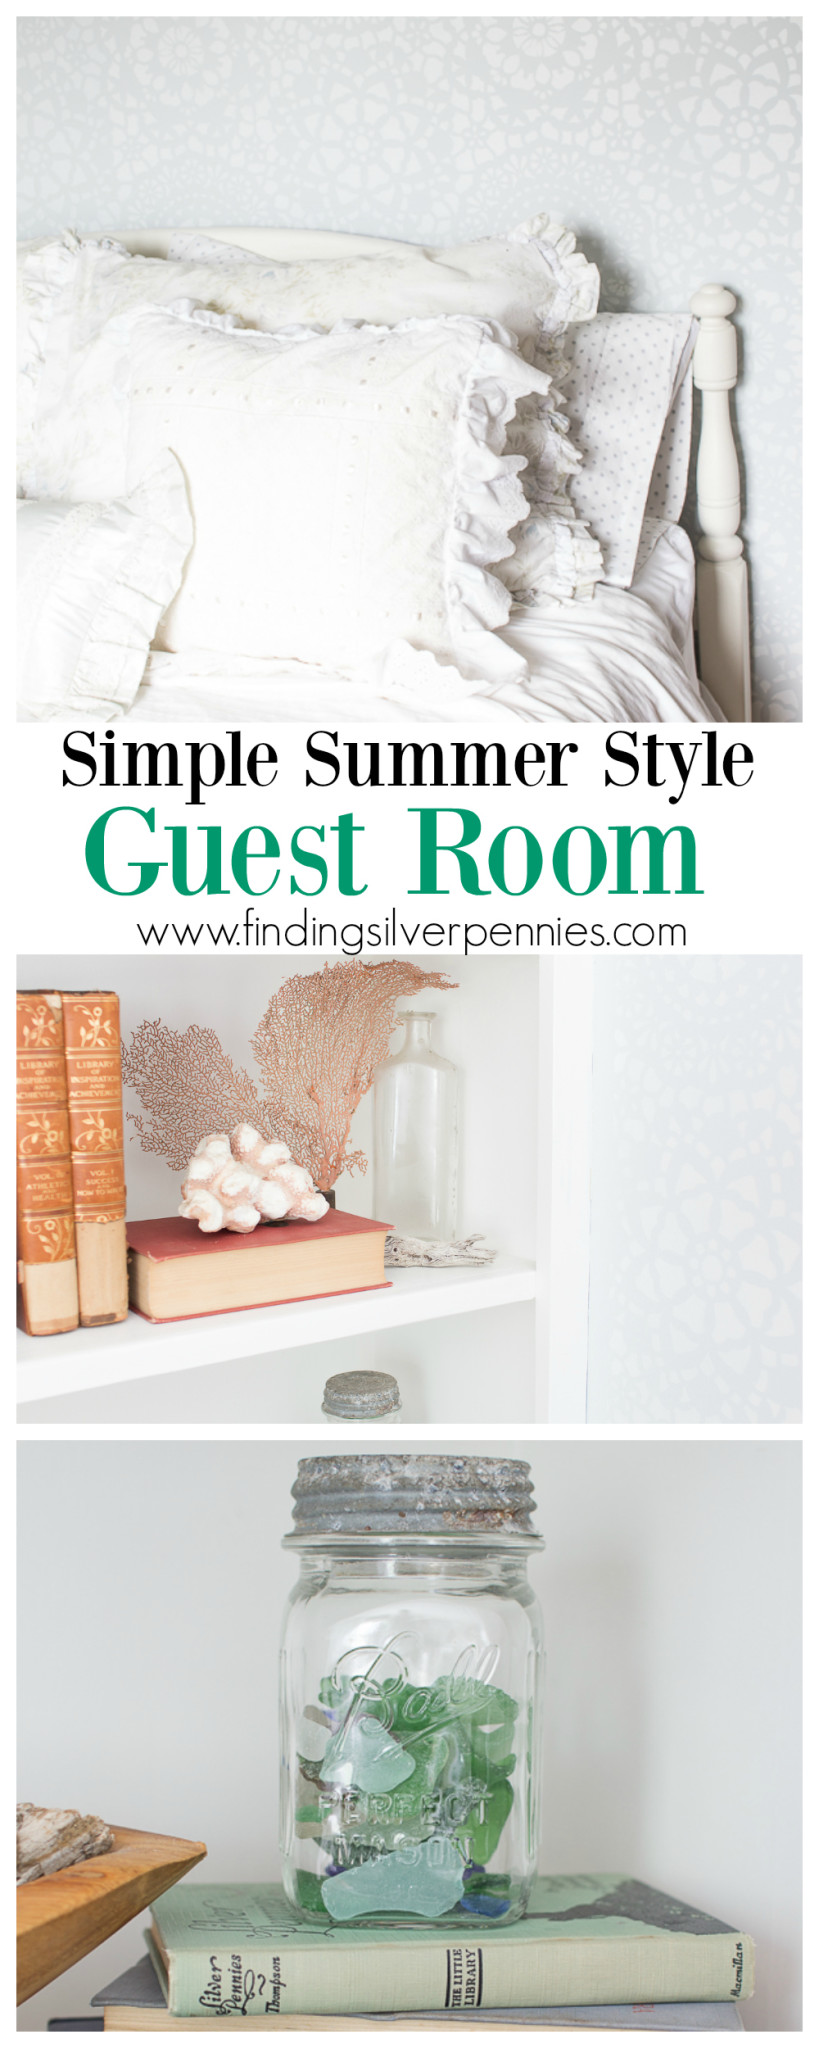 Simple Summer Style In Guest Room and How to Get This Look!